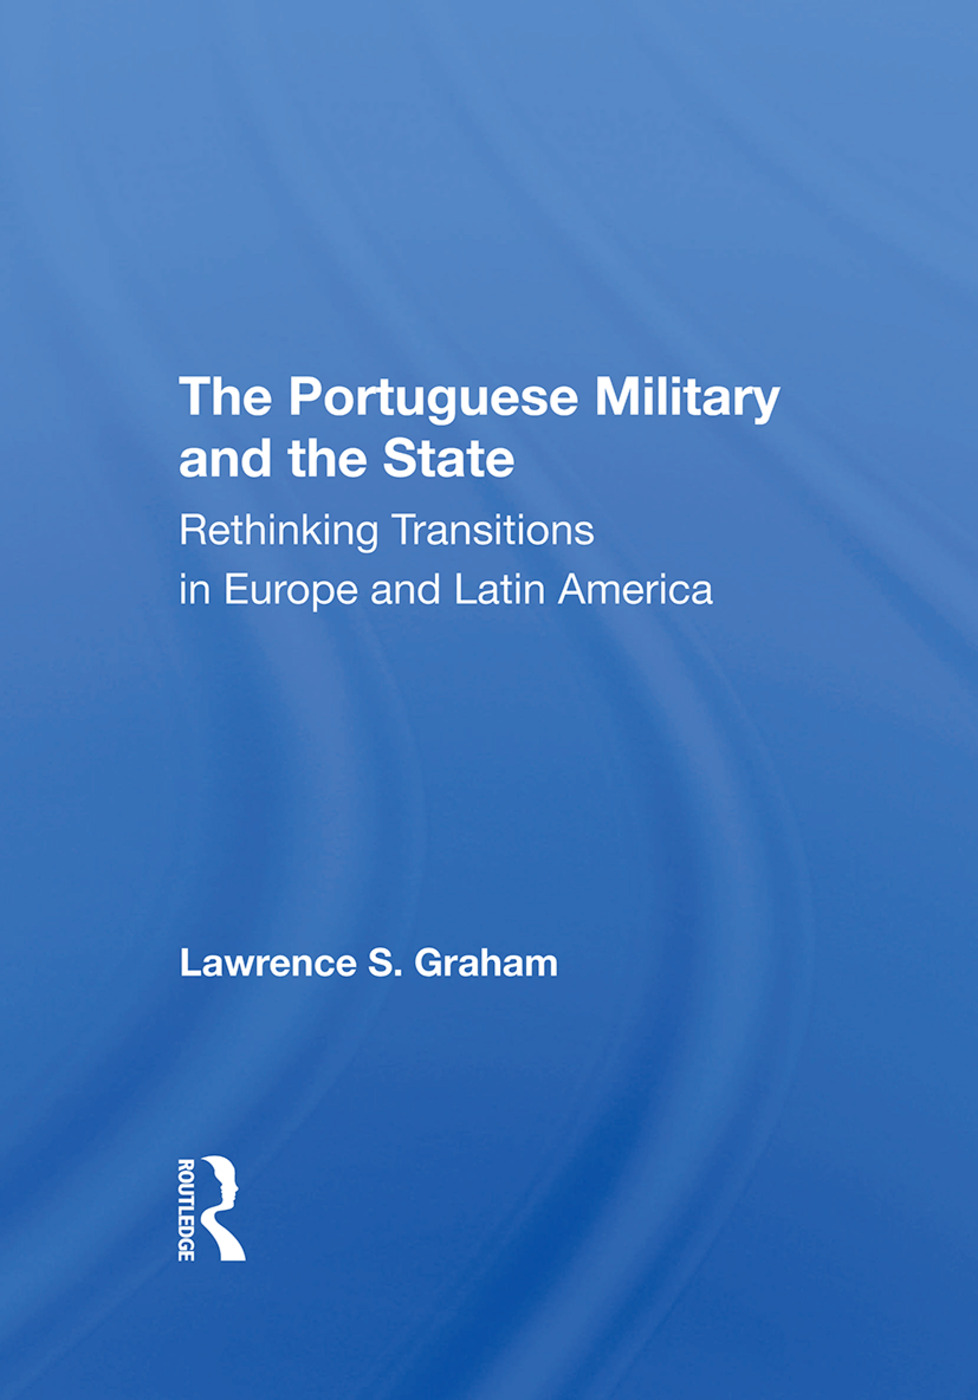 The Portuguese Military And The State: Rethinking Transitions In Europe And Latin America, 1st Edition (Hardback) book cover